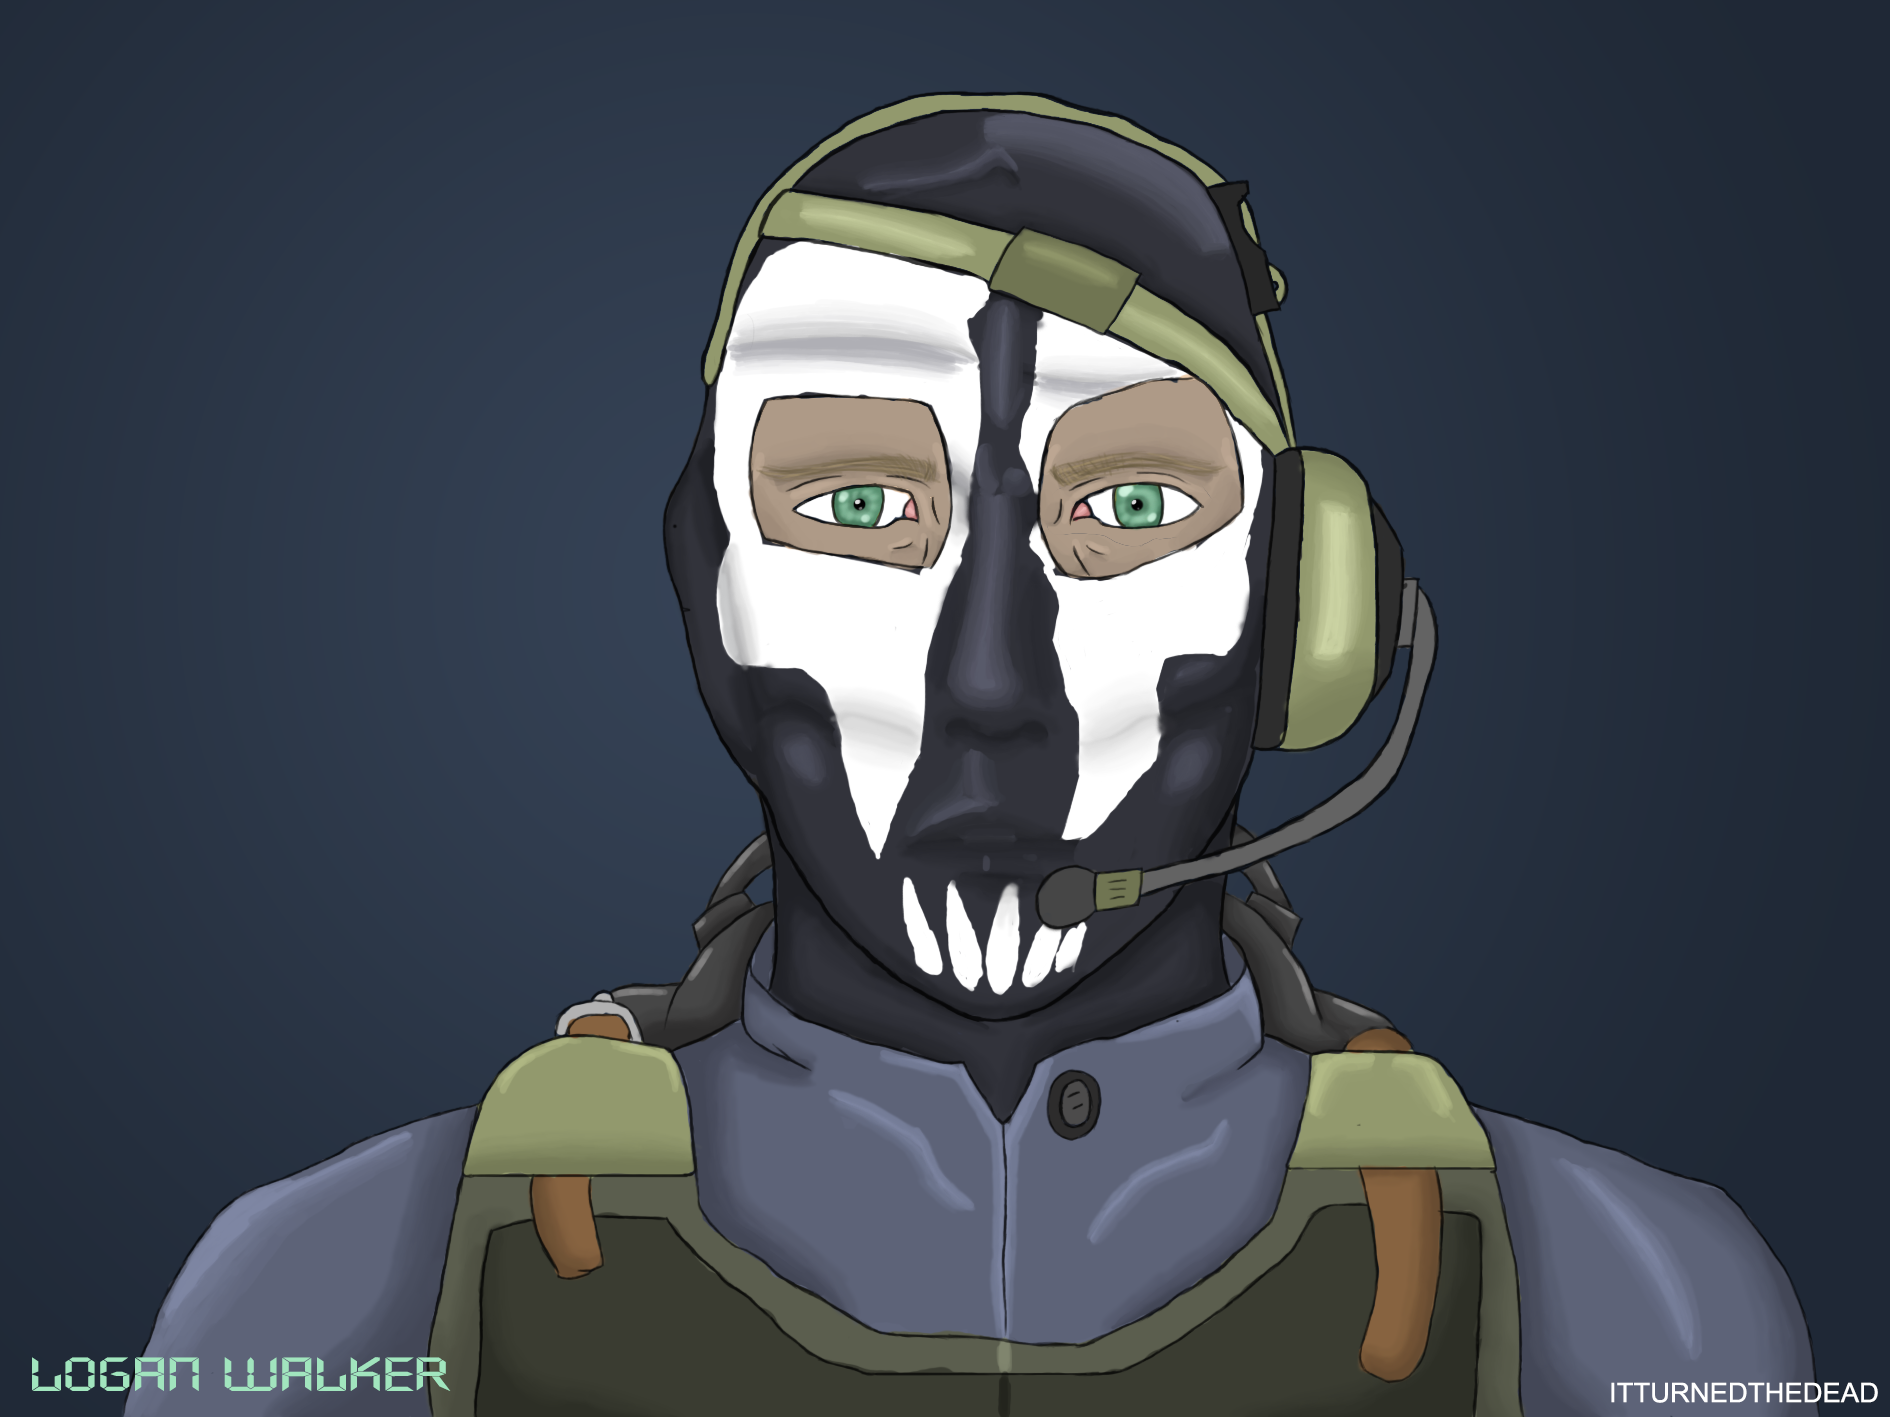 Cod Ghosts Logan Walker Fan Art By Itturnedthedead On Deviantart